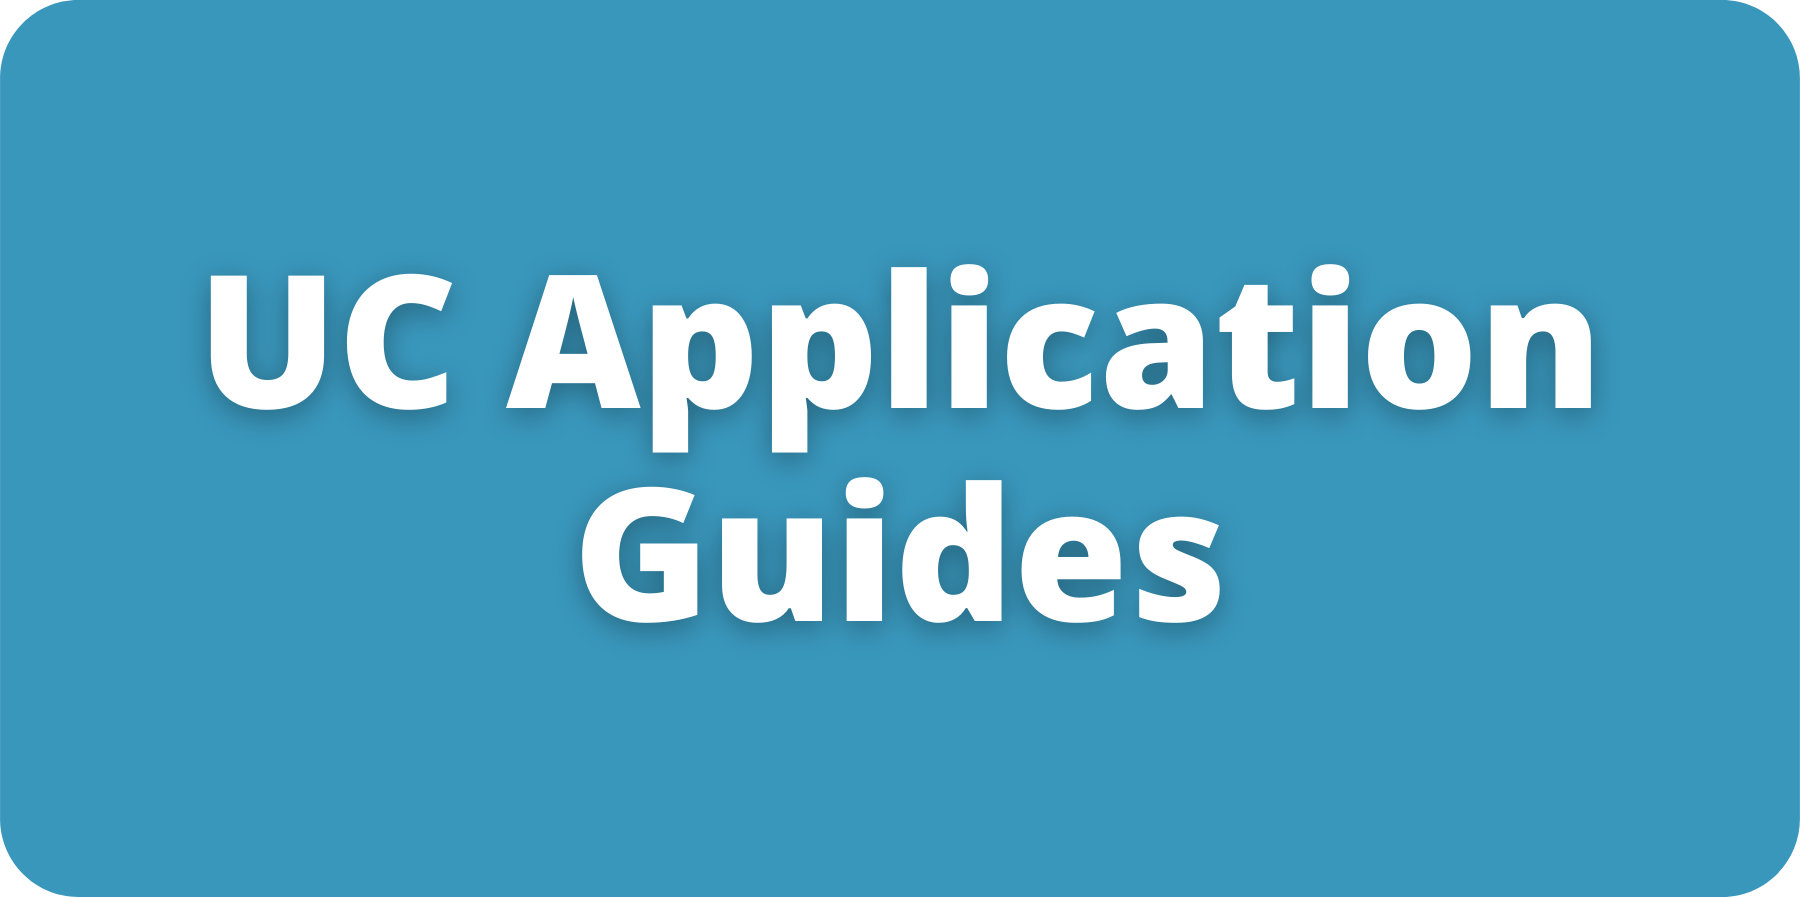 UC Application Guides